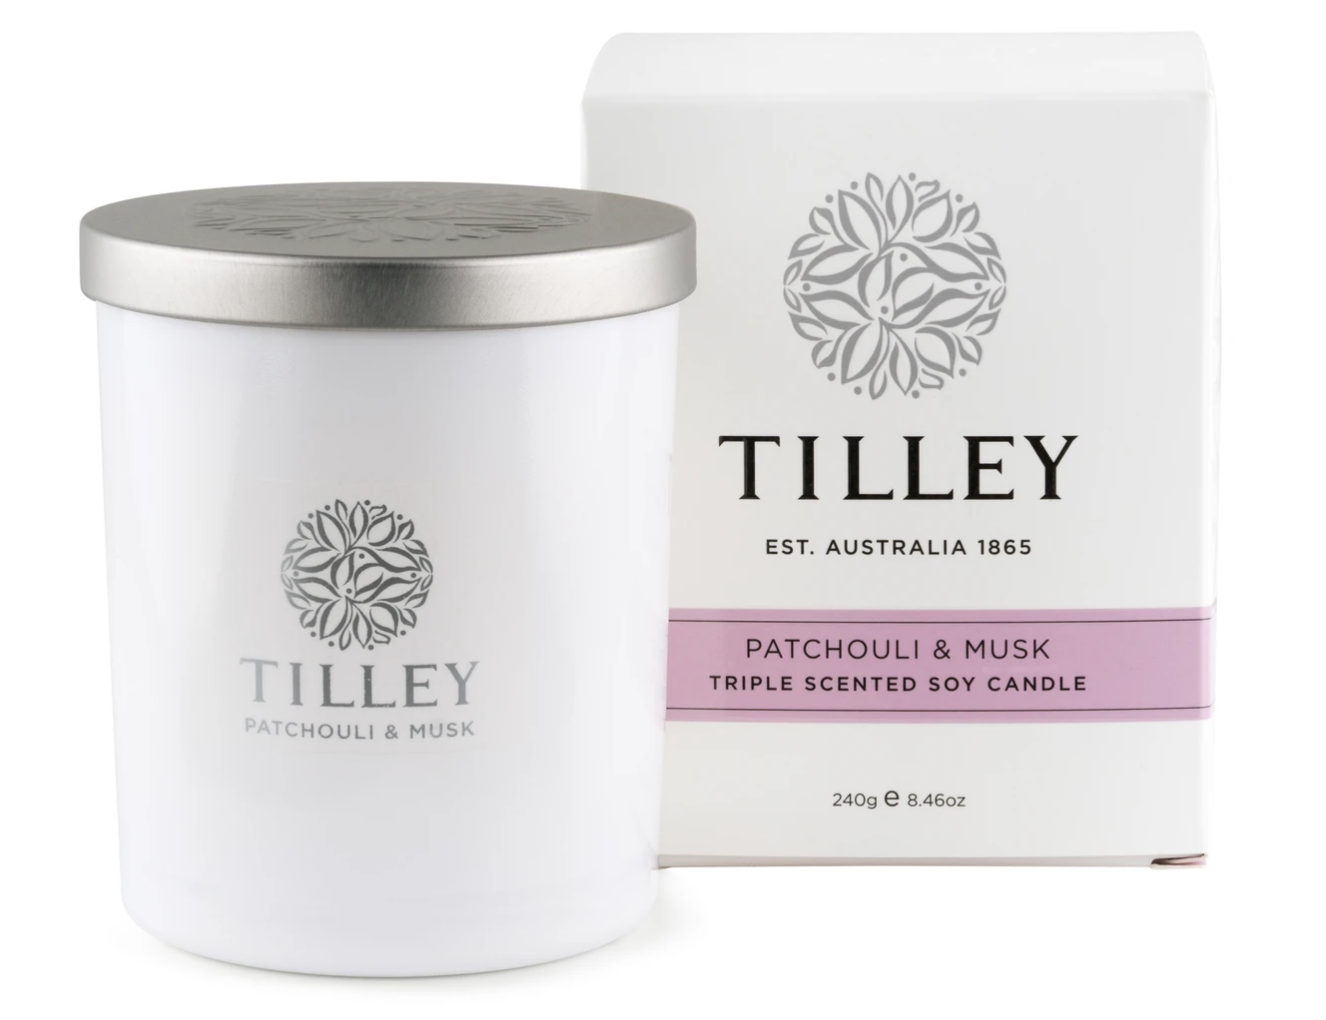 Tilley Candle- Patchouli & Musk